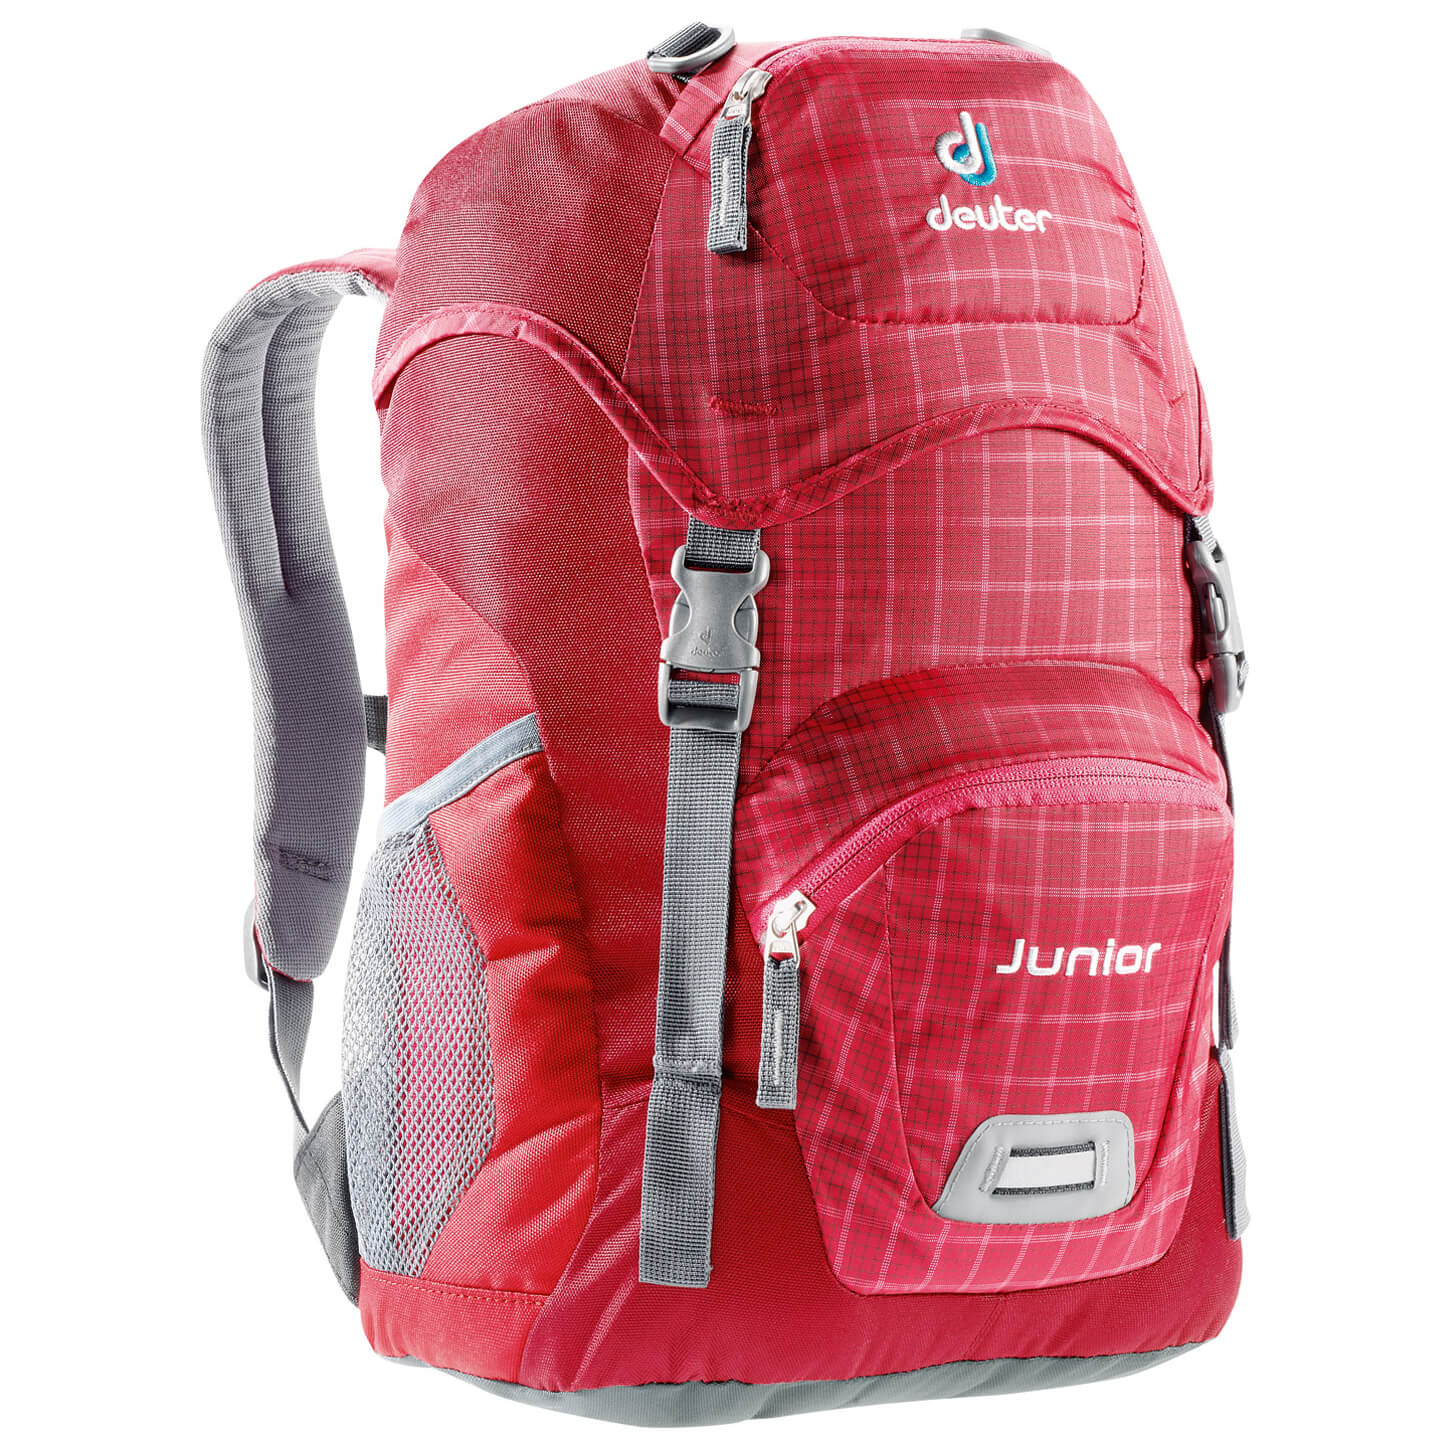 8eaf336547cf Deuter - Junior - Kids  backpack